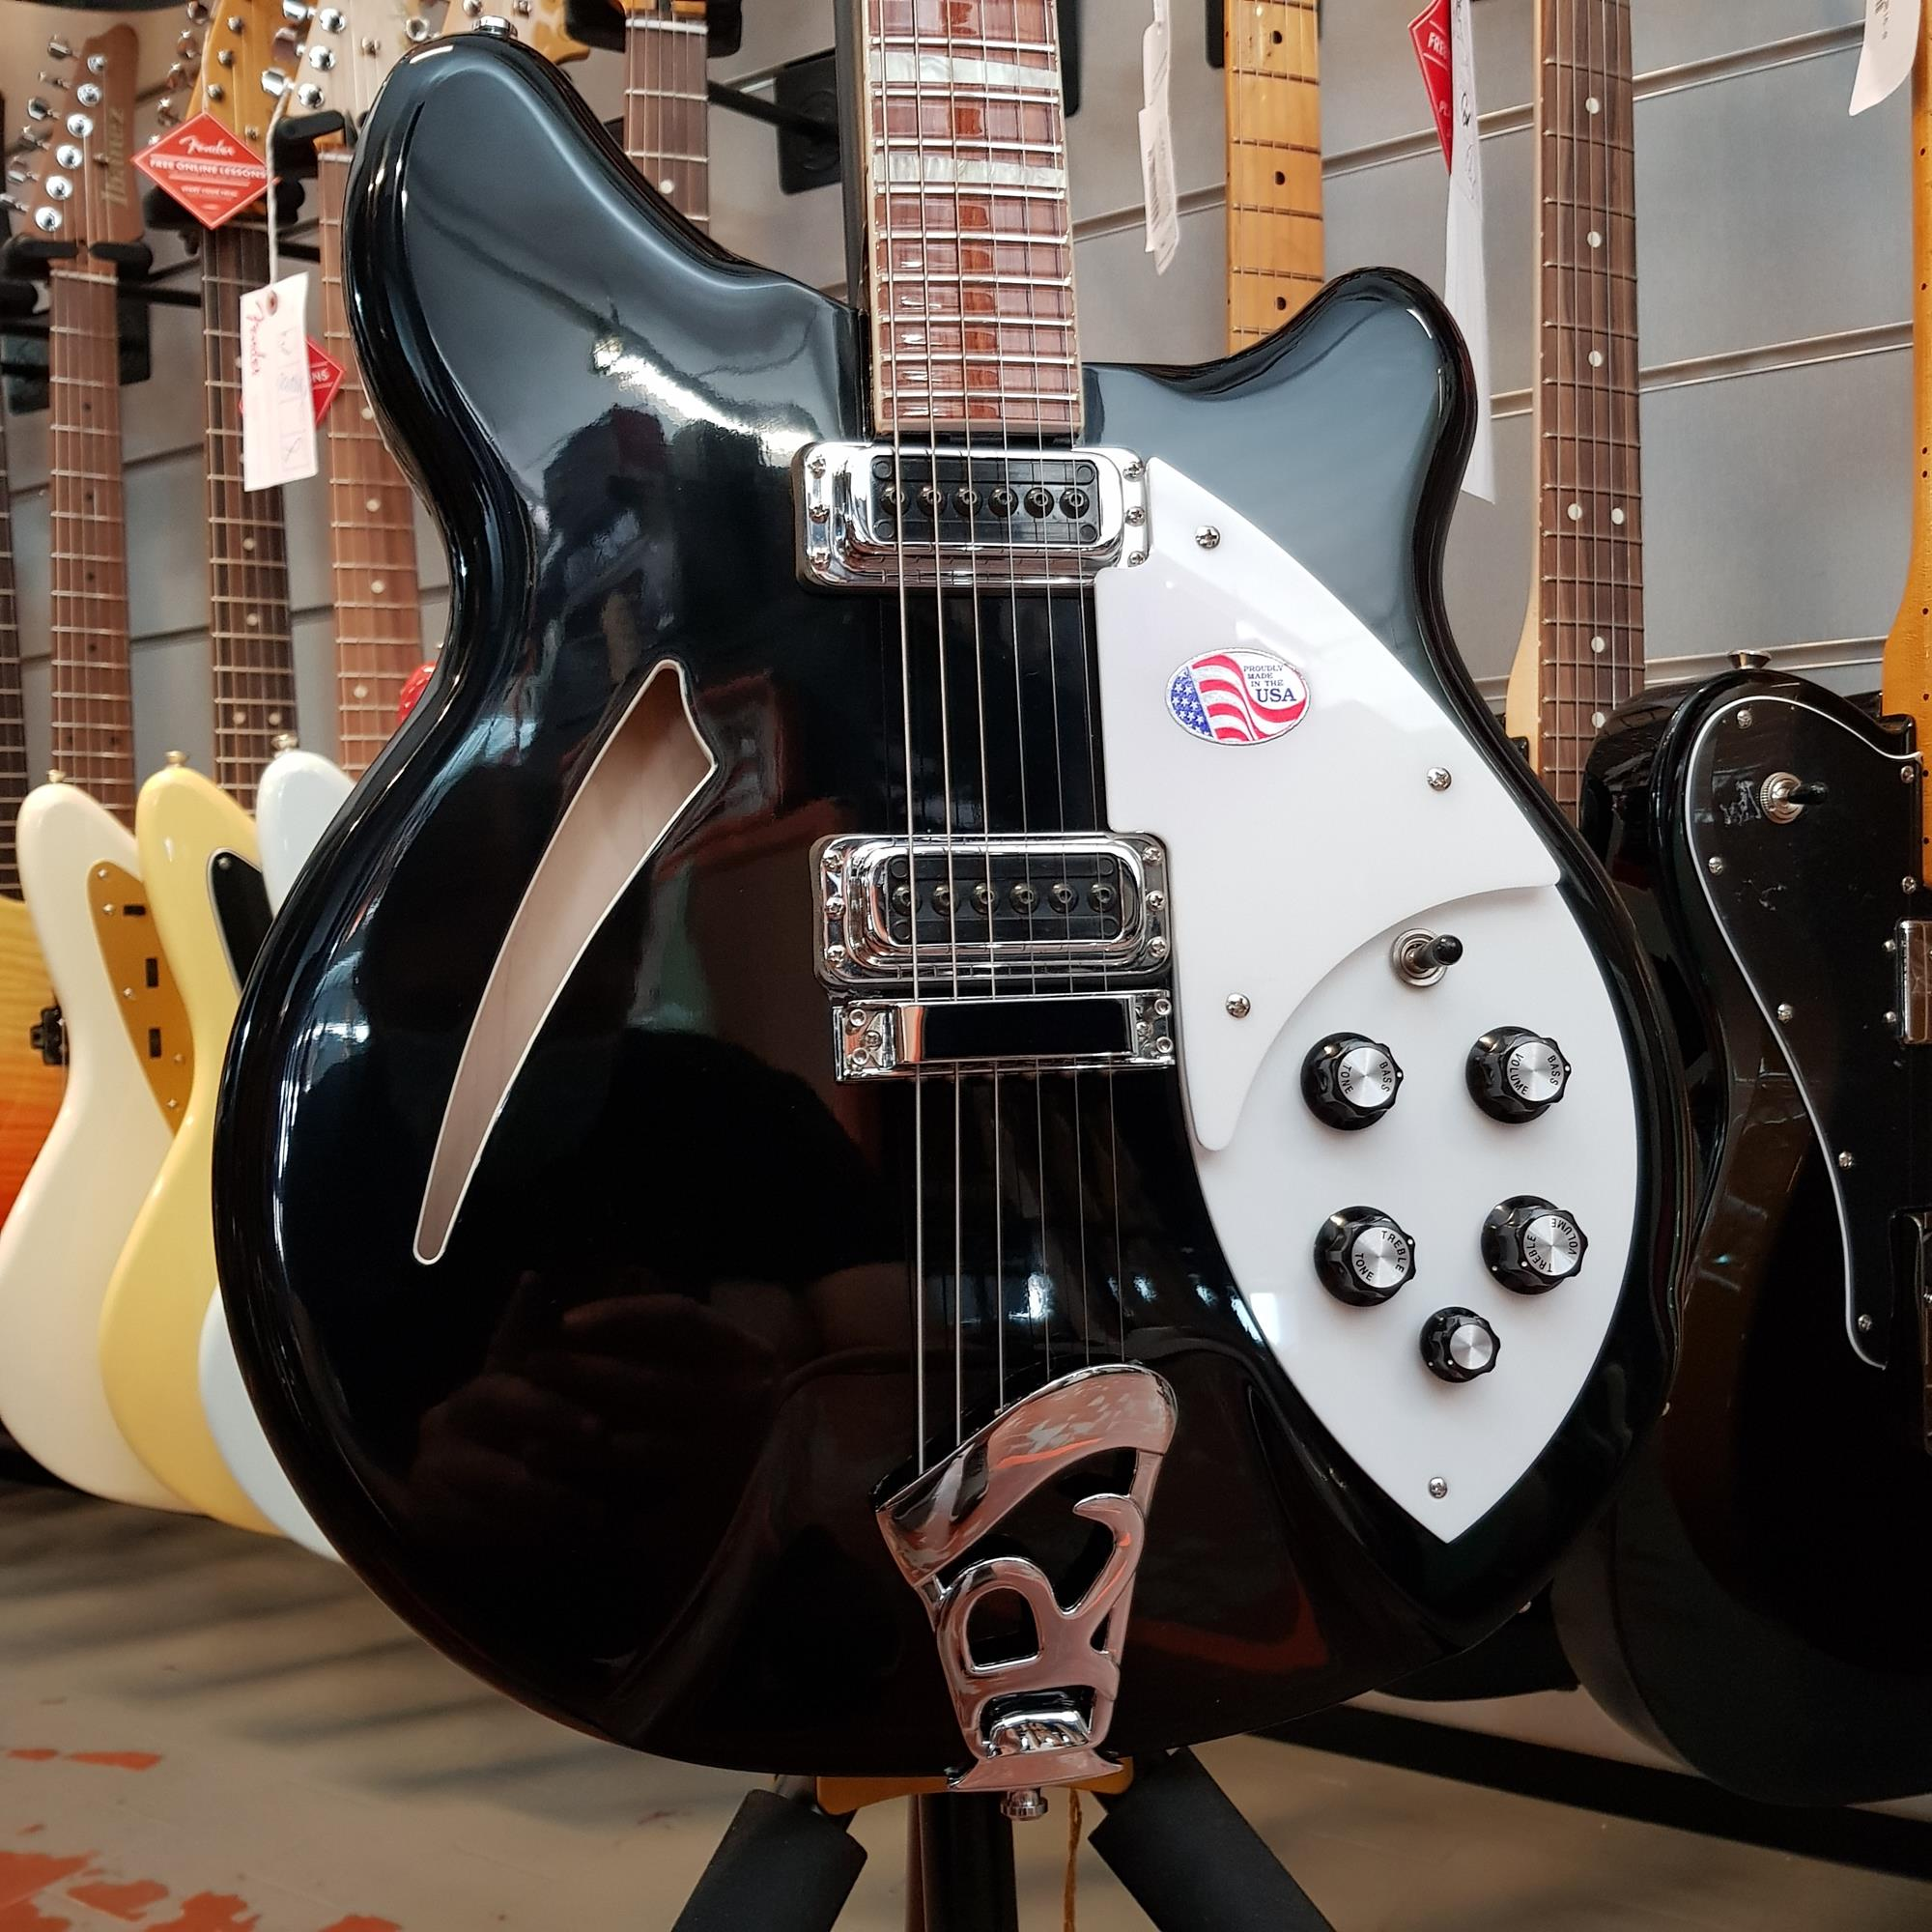 RICKENBACKER-360-JETGLO-BLACK-sku-1590245321832